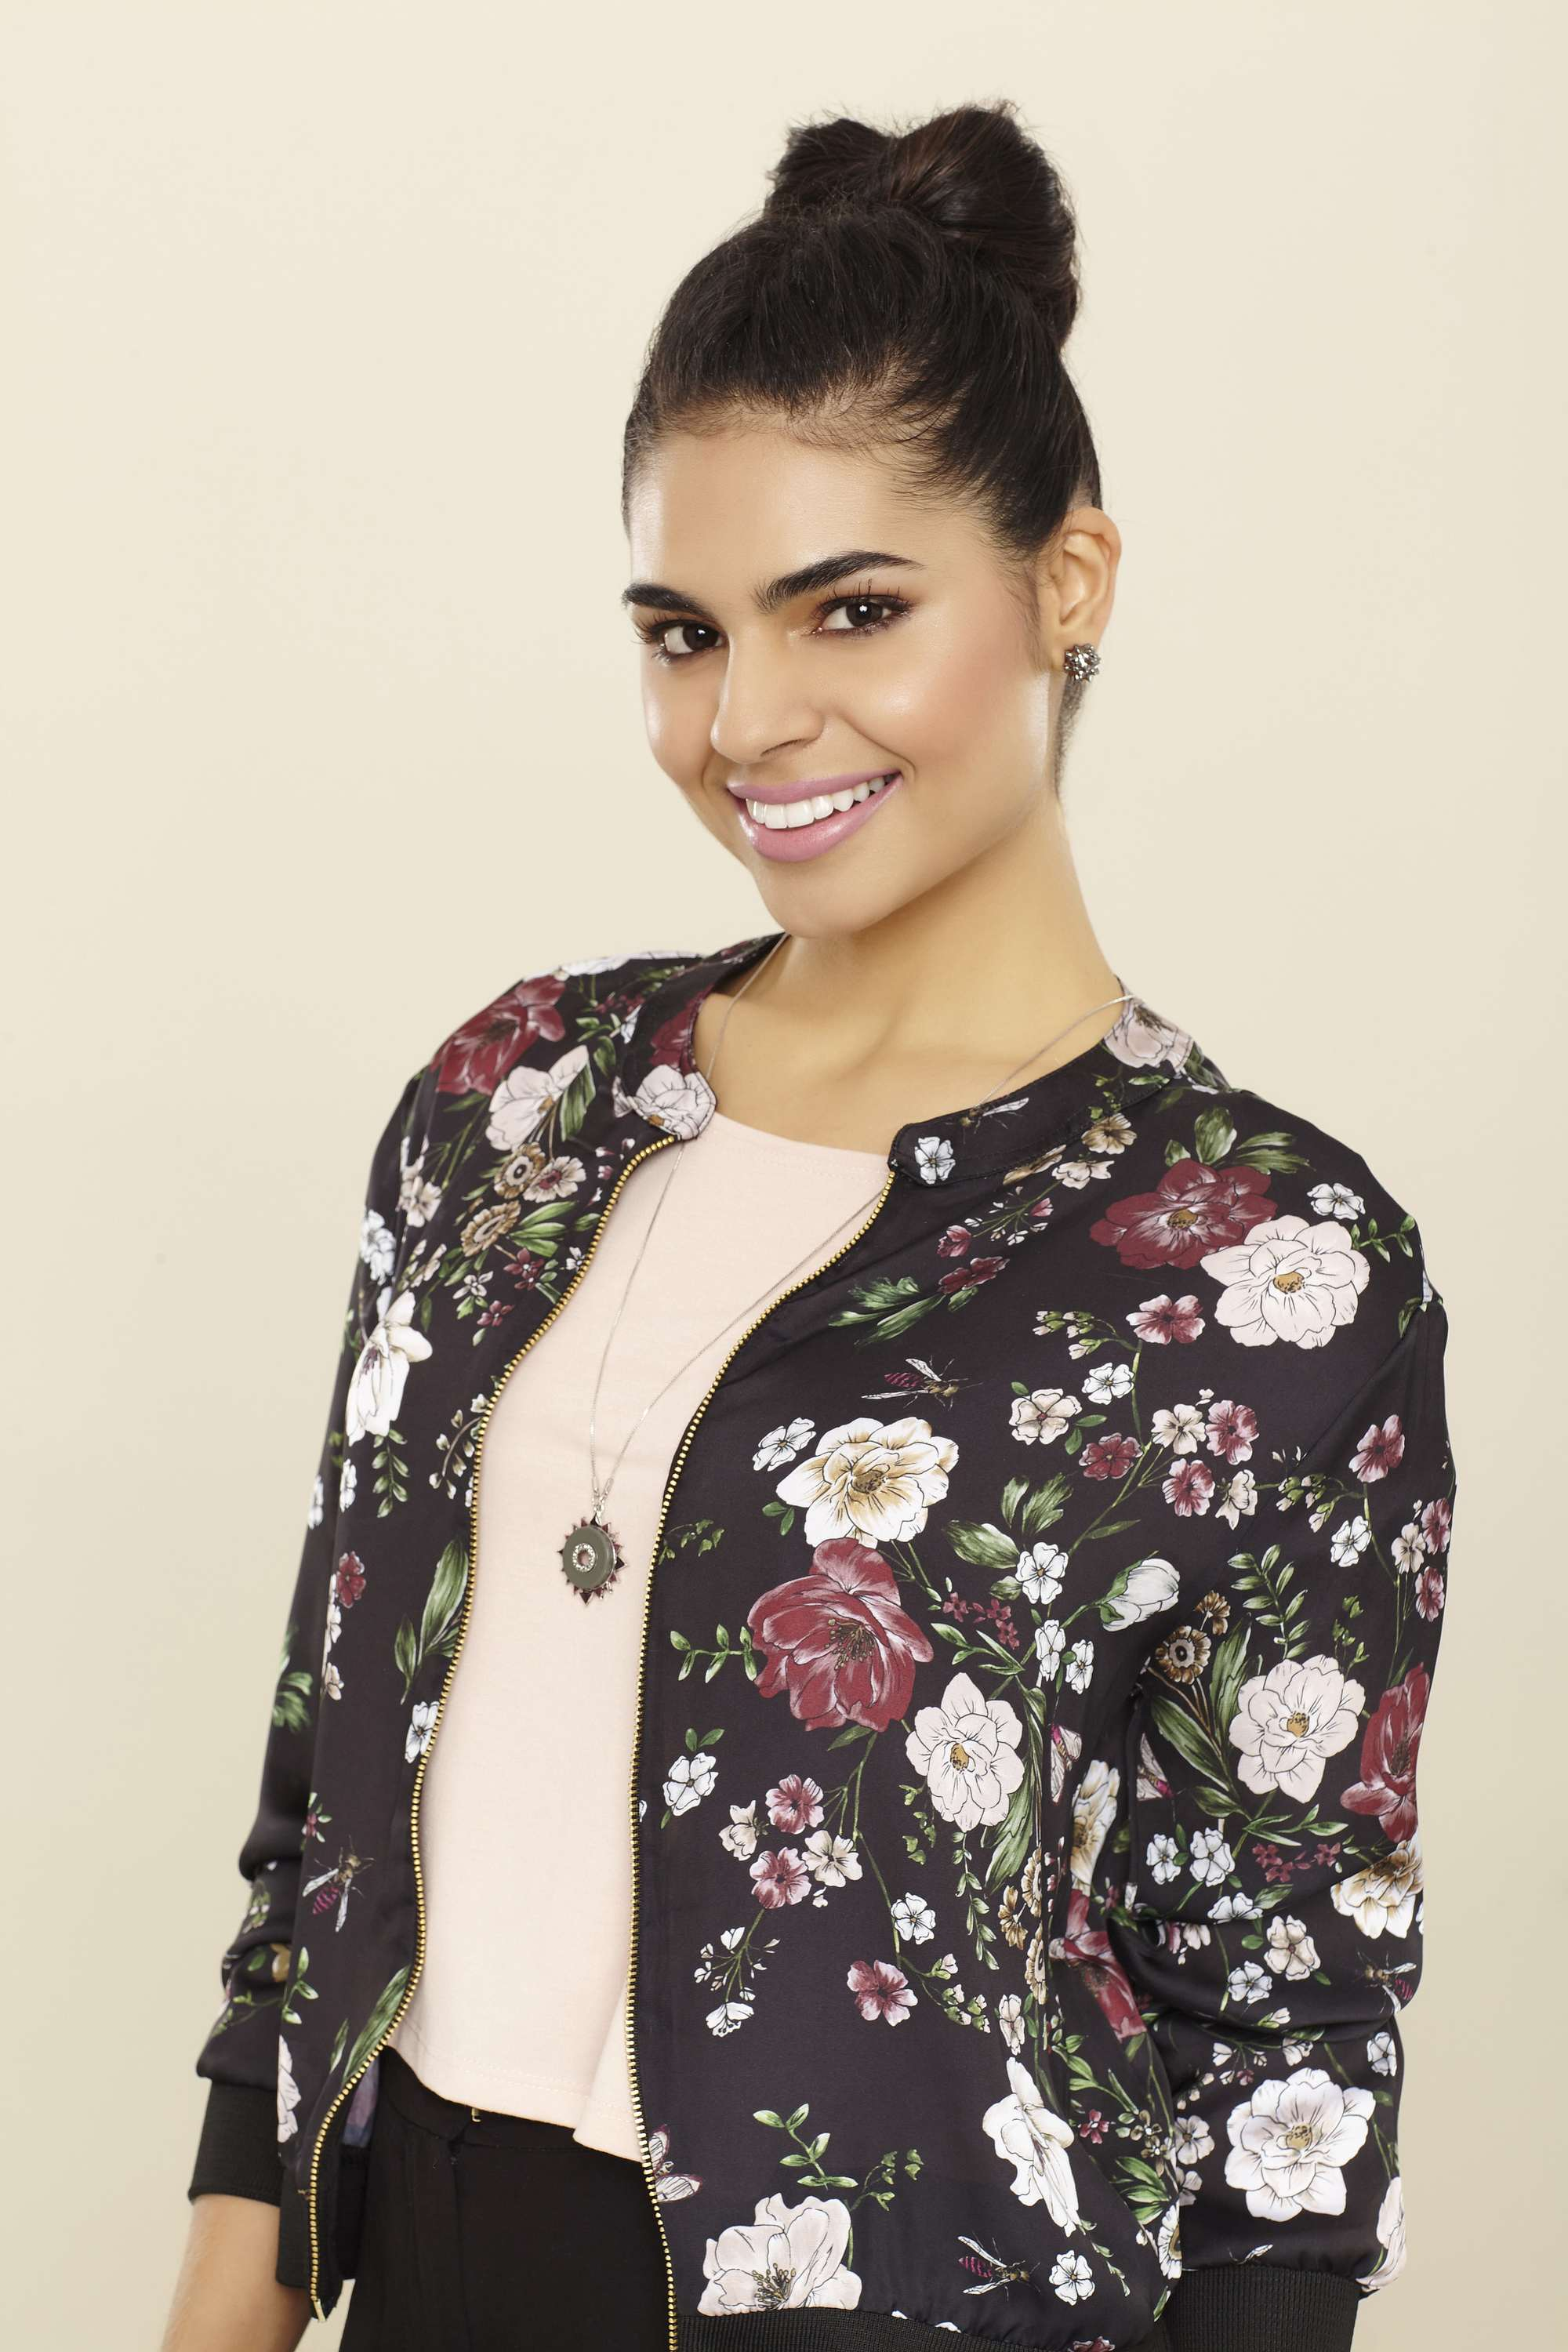 woman with dark brown hair with centre braid in high bun wearing a floral jacket